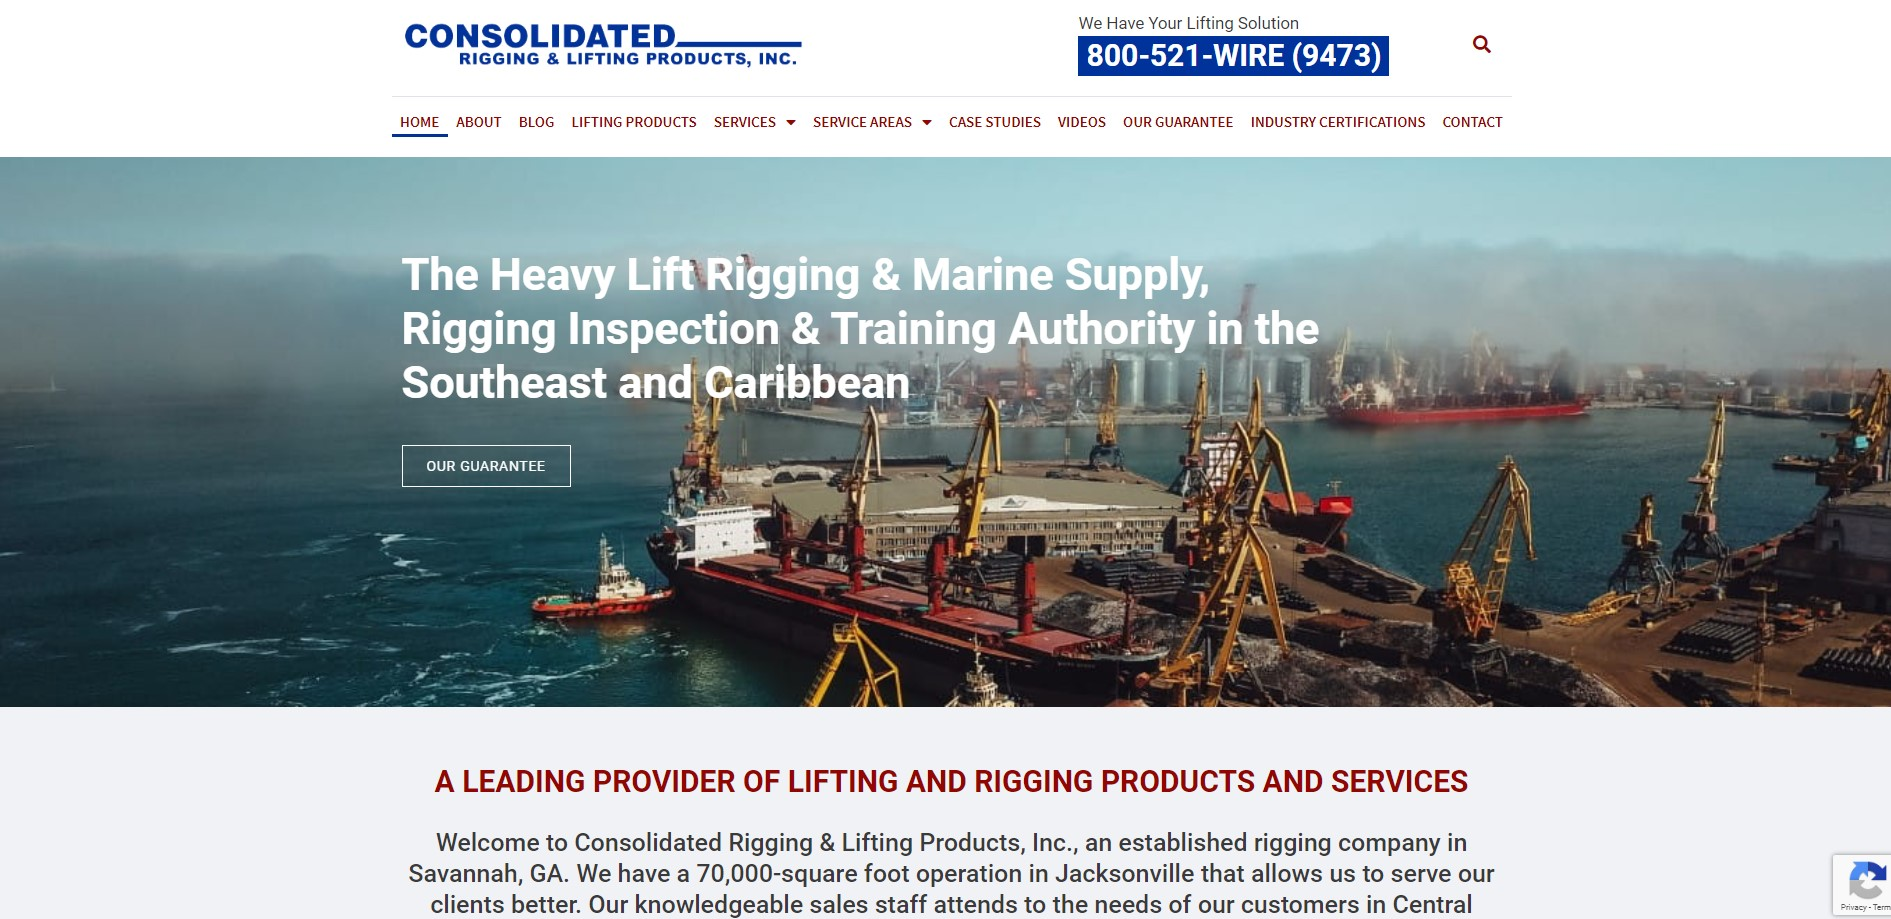 Consolidated Rigging & Marine Supply